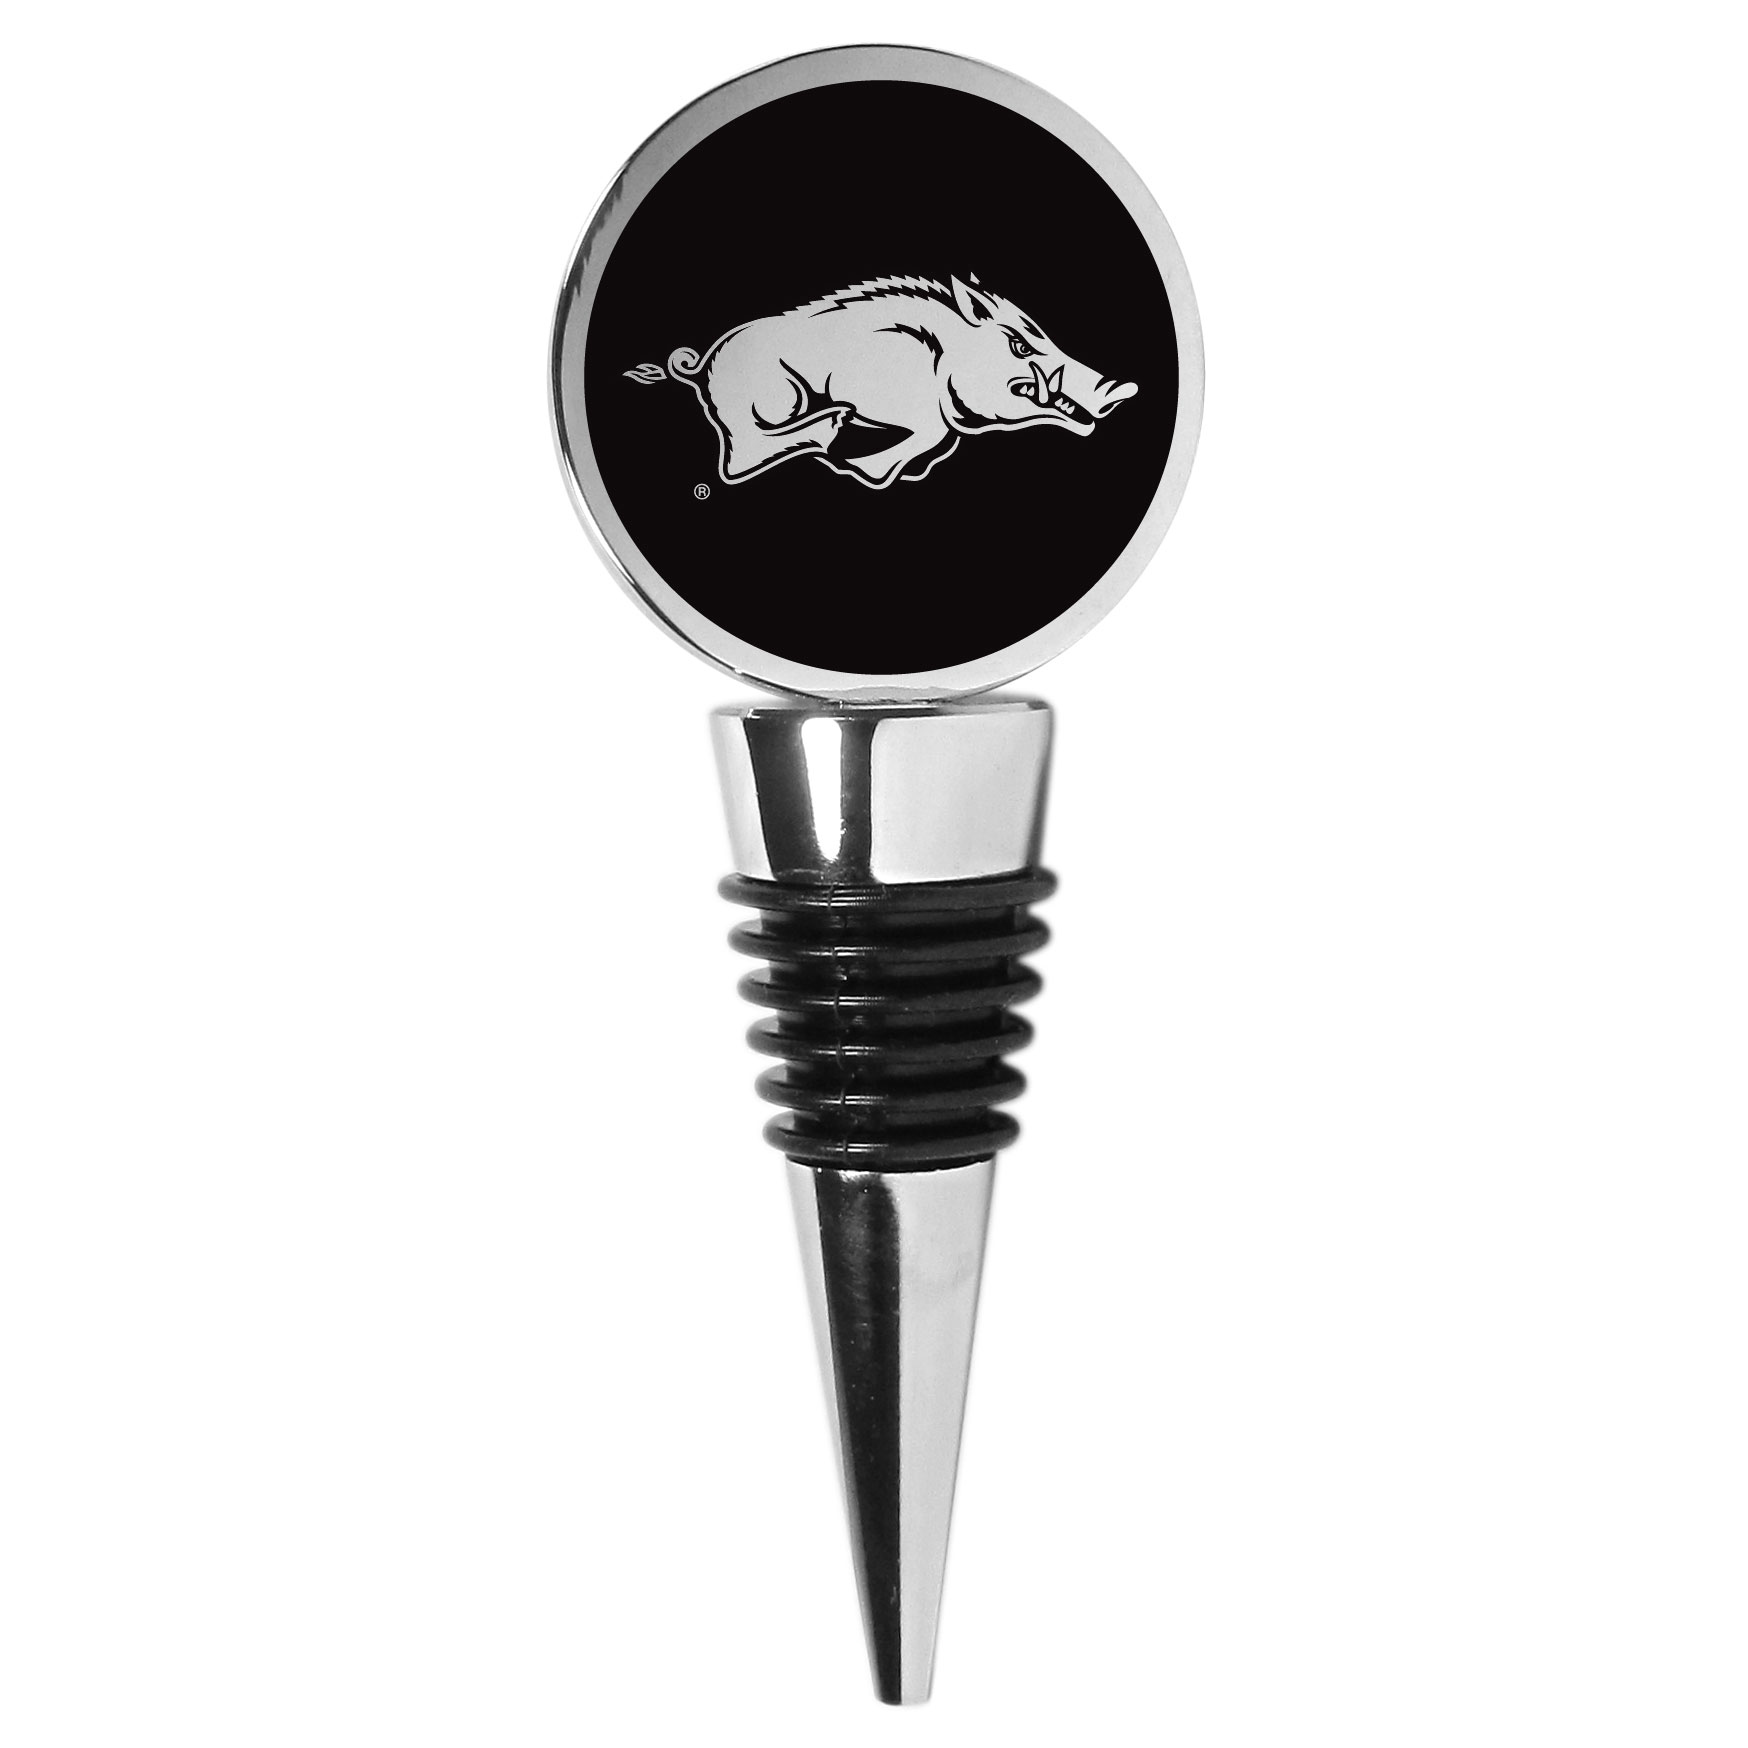 Arkansas Razorbacks Wine Stopper - This beautiful Arkansas Razorbacks wine stopper has a classy monochromatic logo on the top disc. The tapered rubber rings allow you to create a tight seal on multiple sizes of wine bottles so that you are able to preserve the wine for later enjoyment. This a perfect addition to a game day celebration.